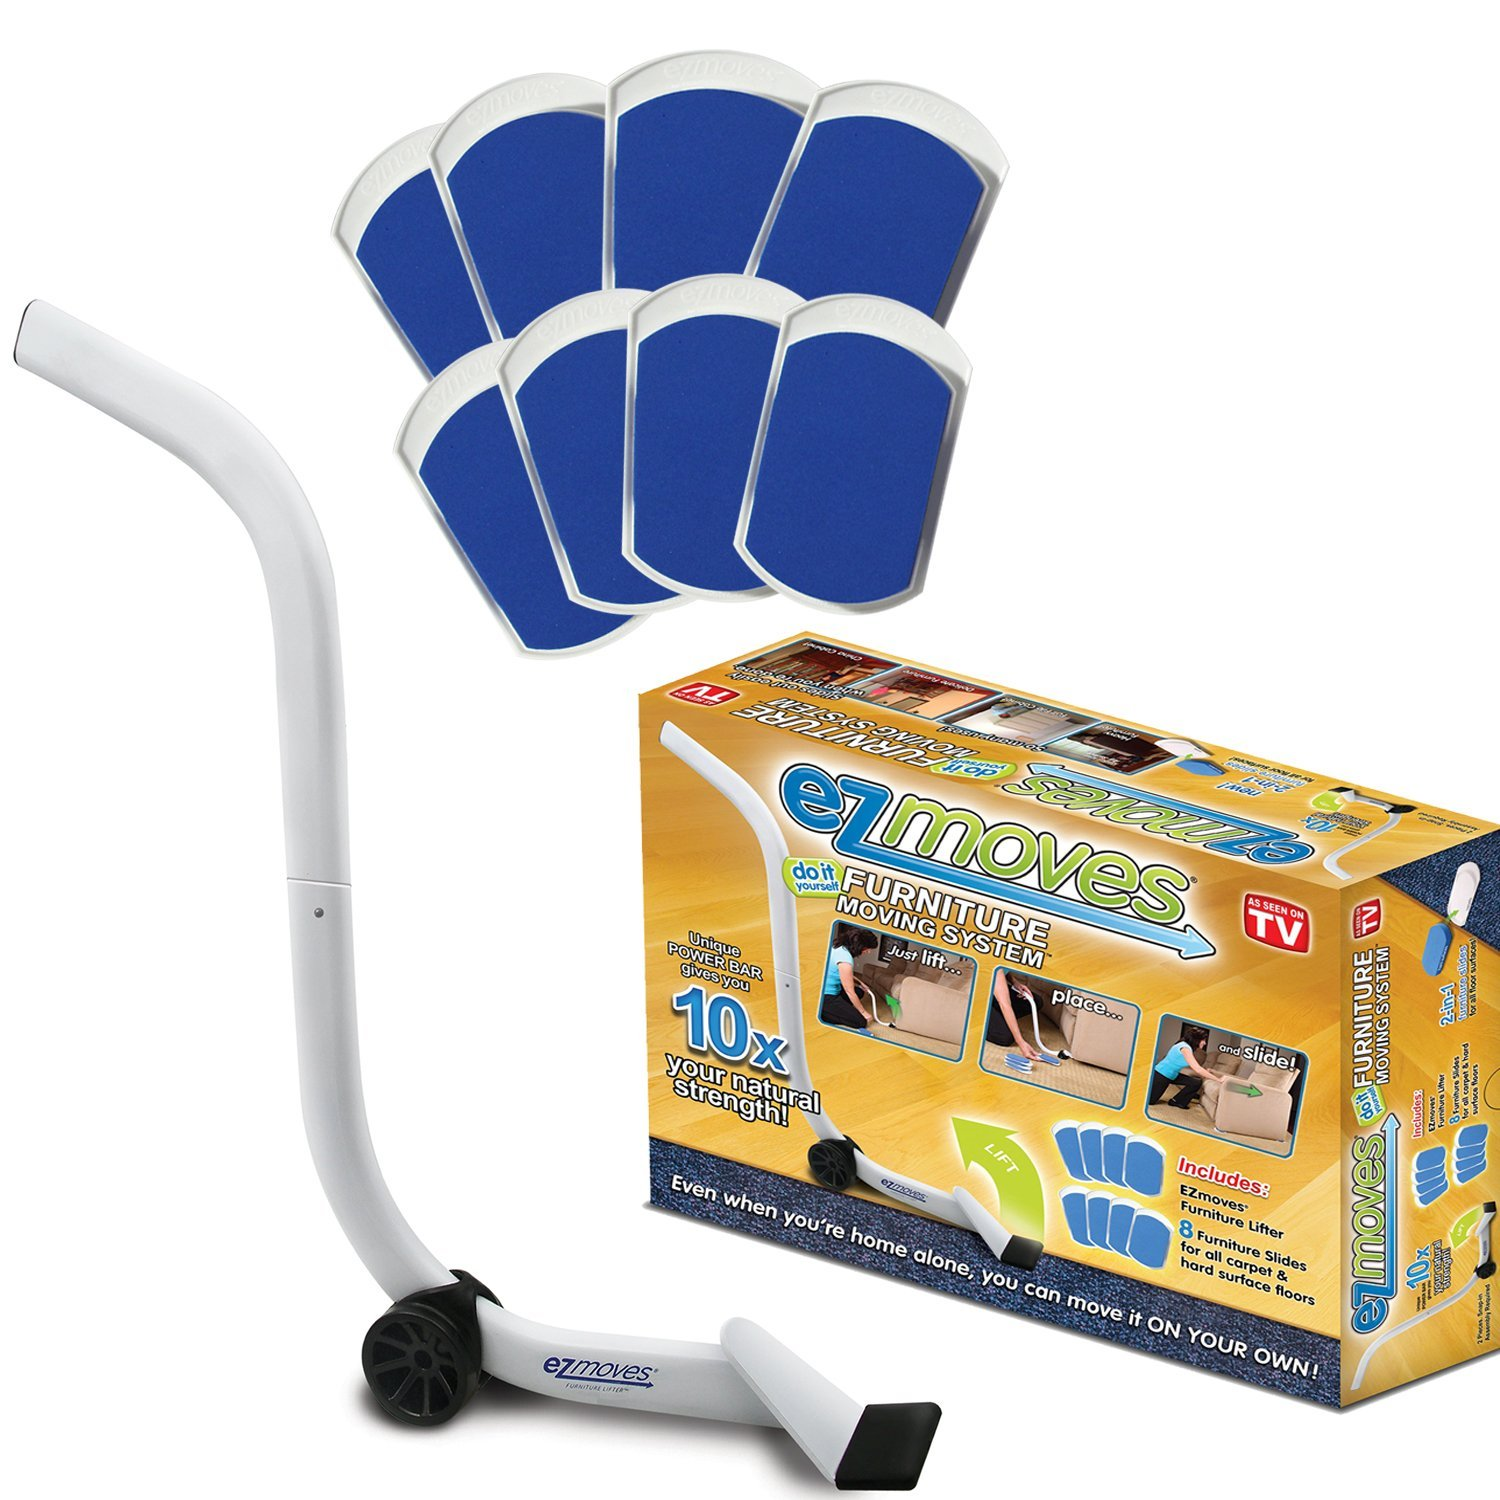 EZ Moves Furniture Moving Pads System (1 Lifter Tool & 8 Sliders) As Seen on TV shaung@allstarmg EZ011106